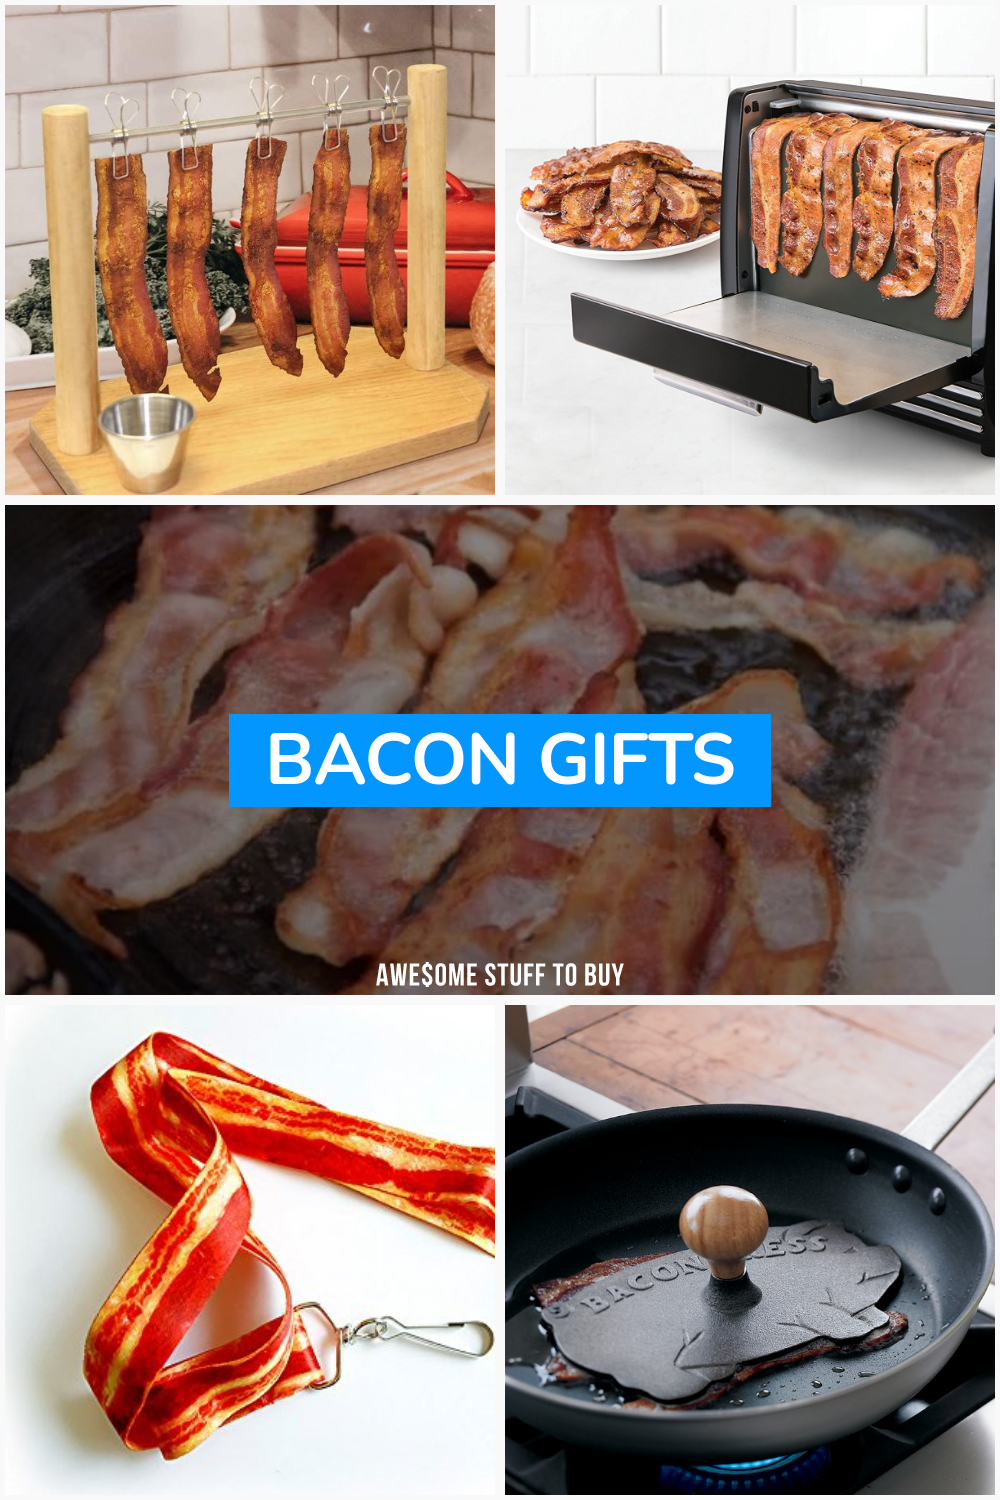 Bacon Gifts // Awesome Stuff to Buy